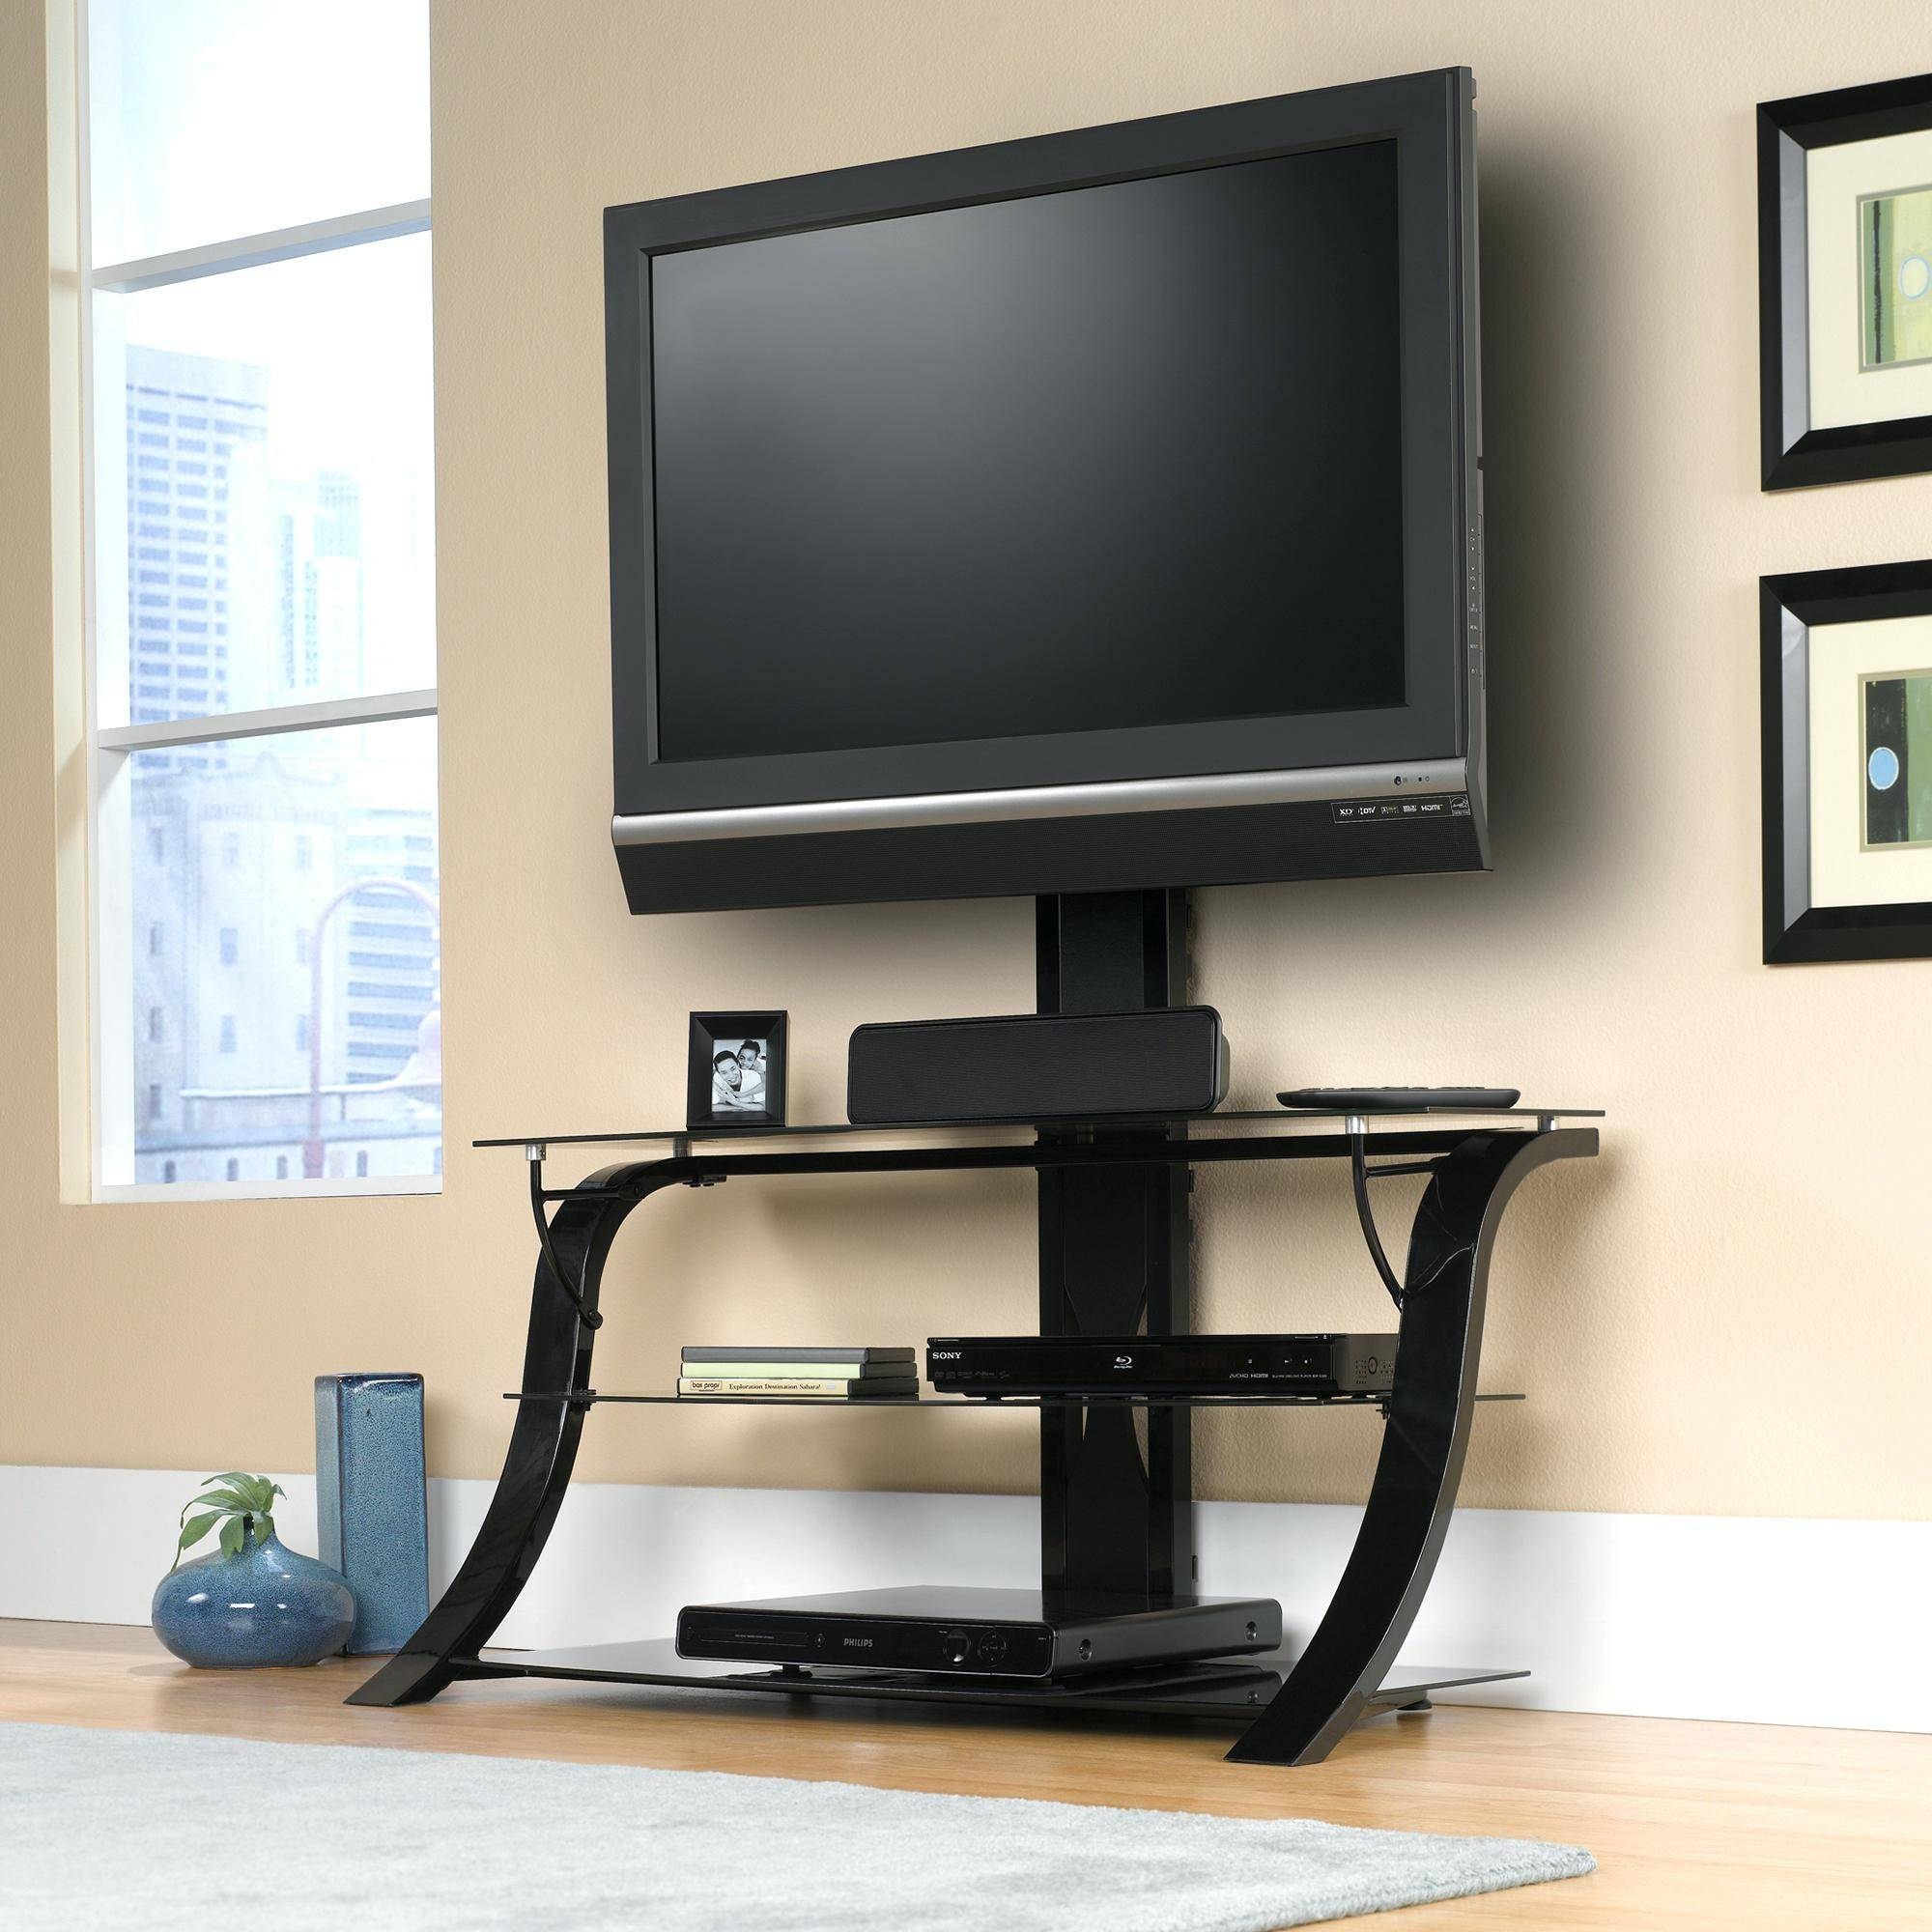 Tv Stand: Beautiful 50 Glass Tv Stand For Home Furniture with Stil Tv Stands (Image 14 of 15)